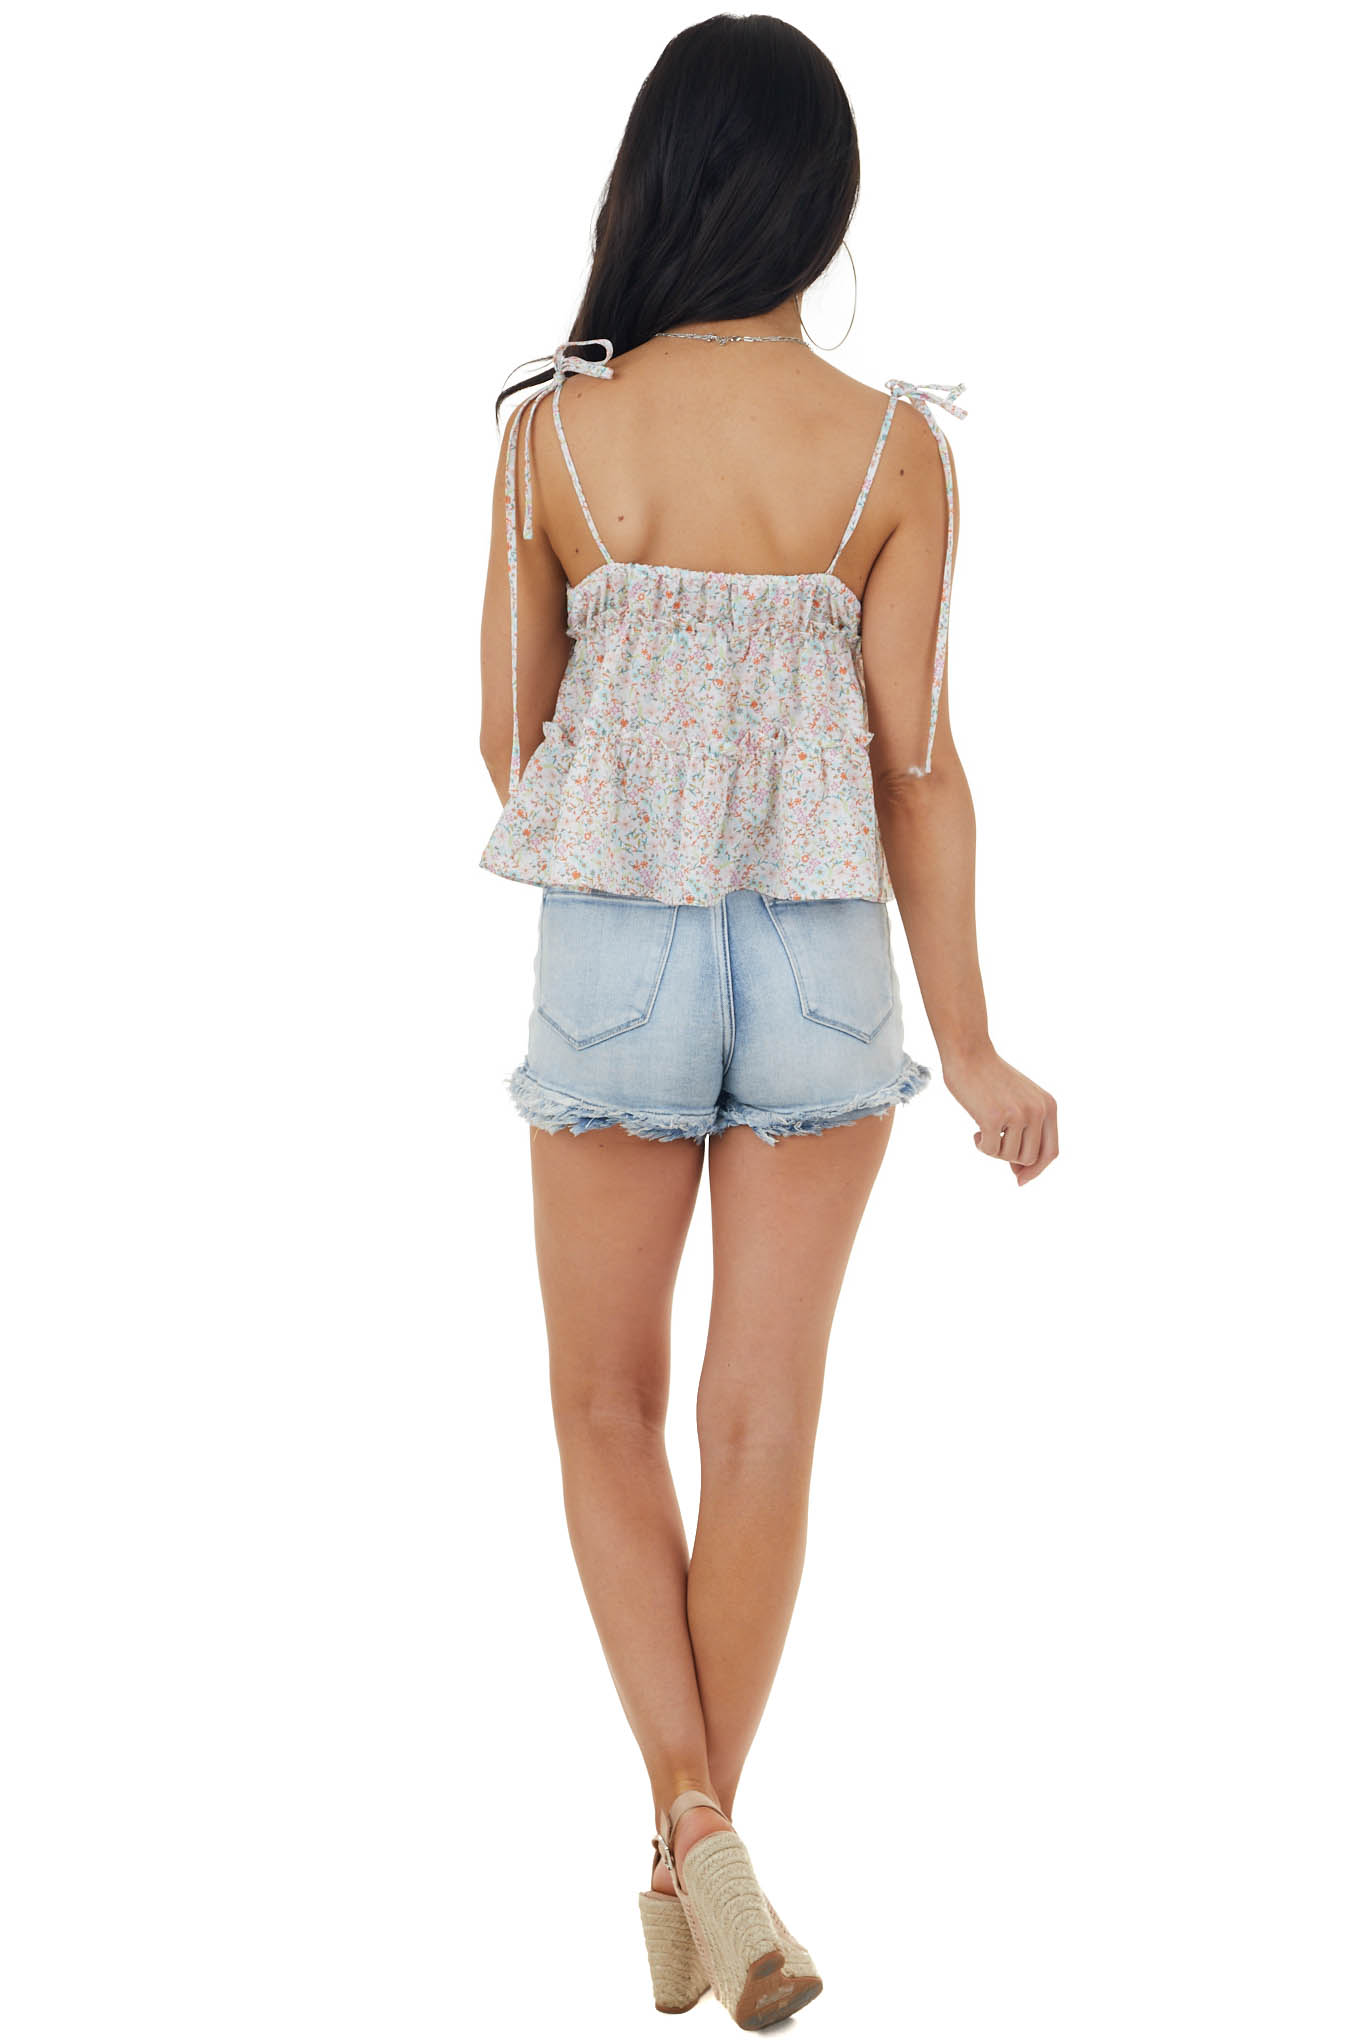 Off White Floral Print Sleeveless Blouse with Tie Straps